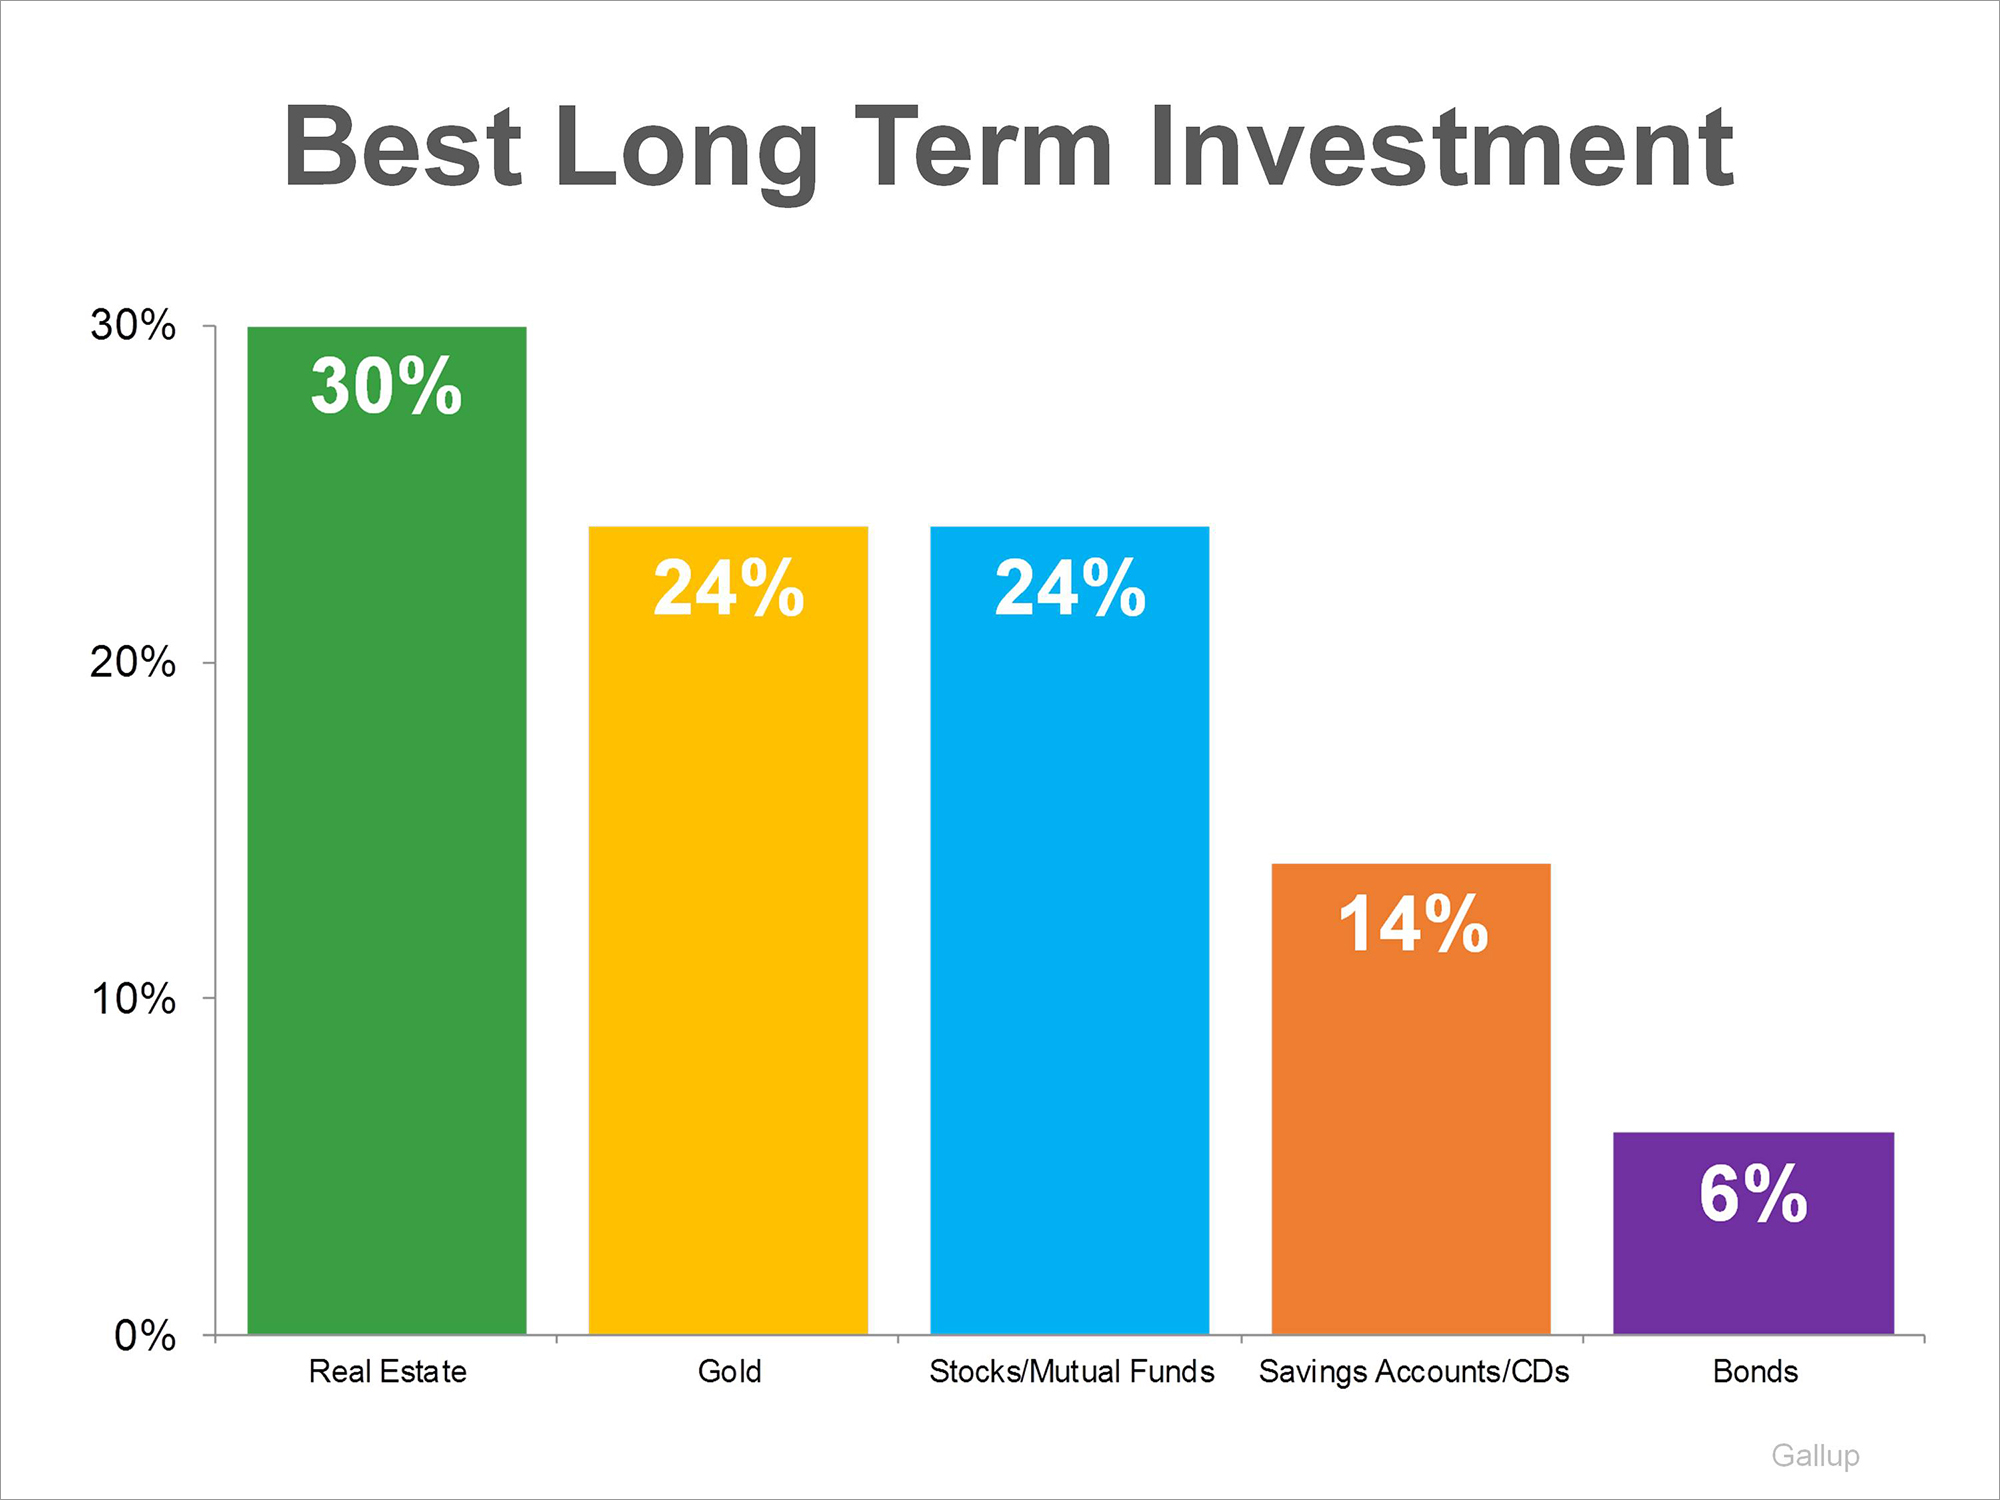 Gallup Poll: Real Estate Best Long-Term Investment | Keeping Current Matters